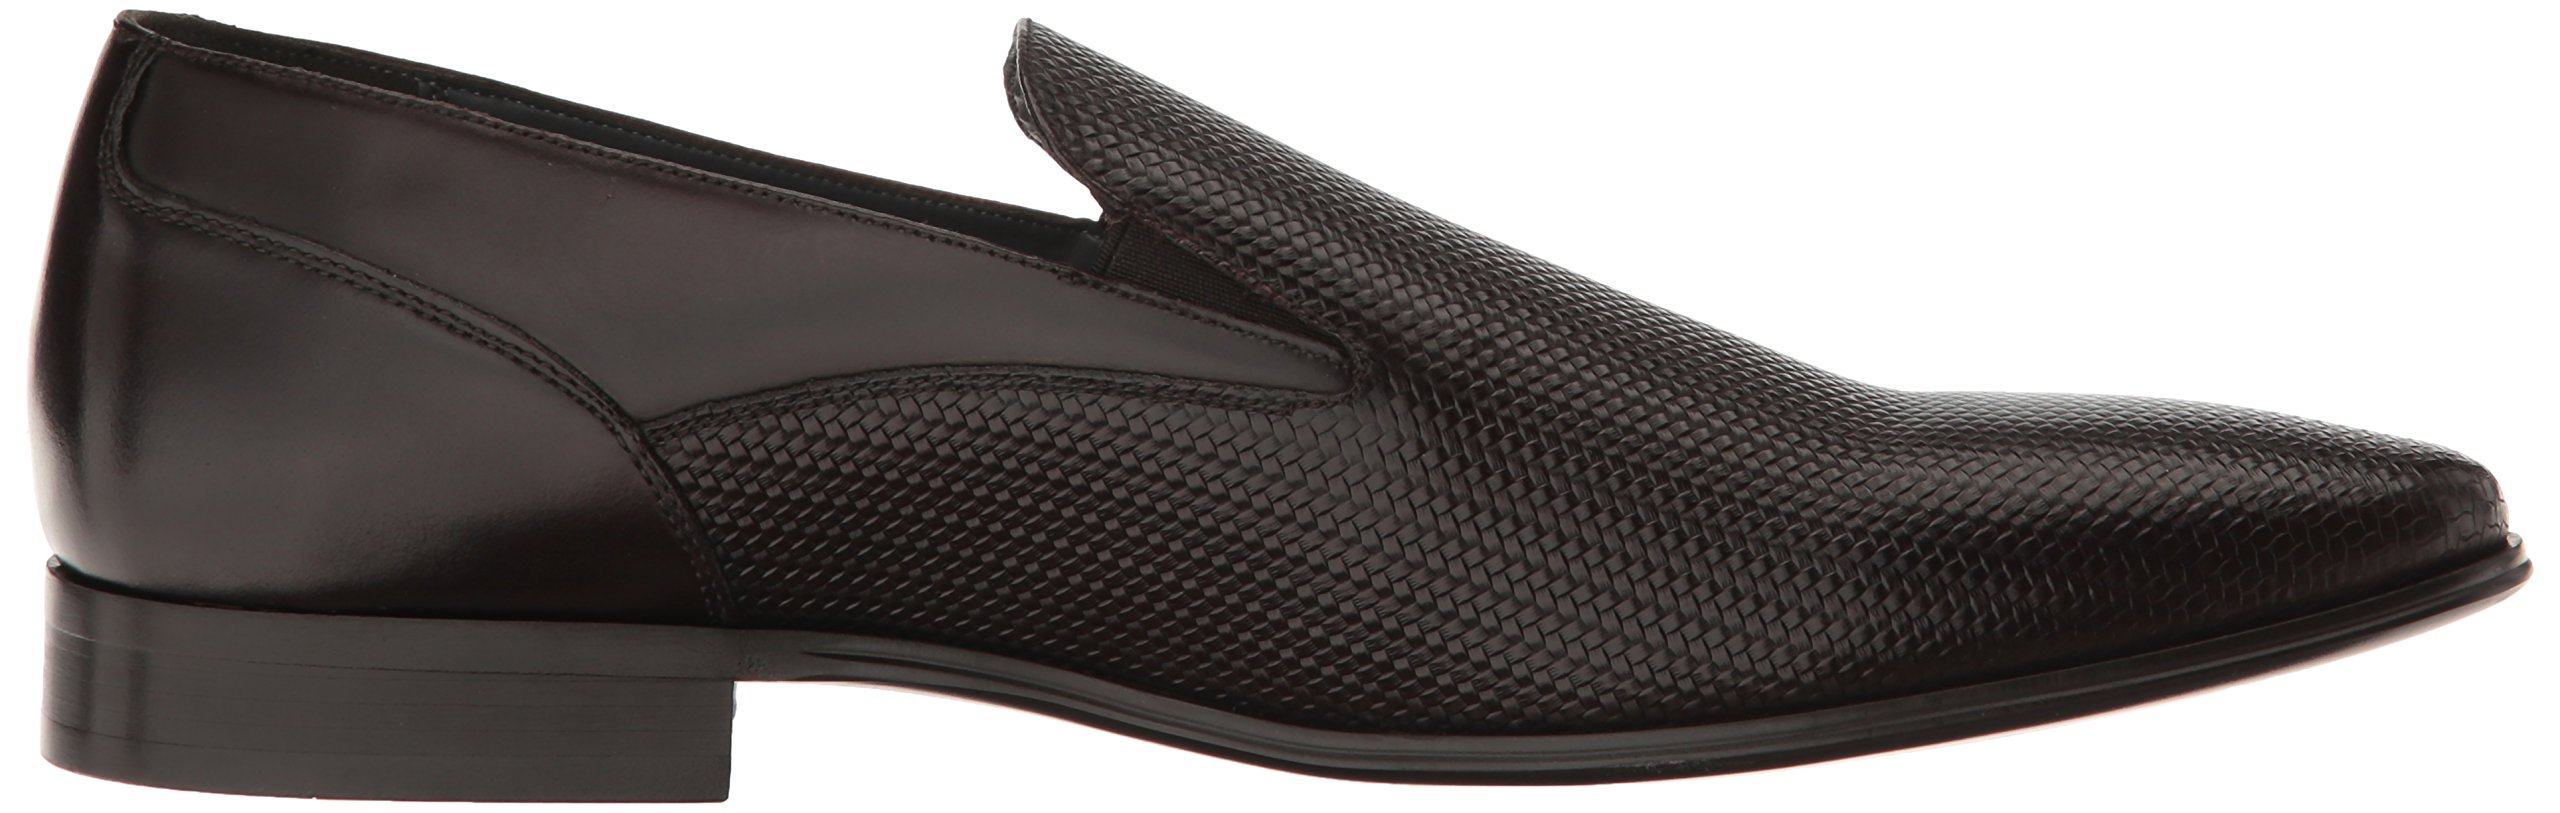 ALDO Men's Gwaling Tuxedo Loafer, Dark Brown, 13 D US by ALDO (Image #7)